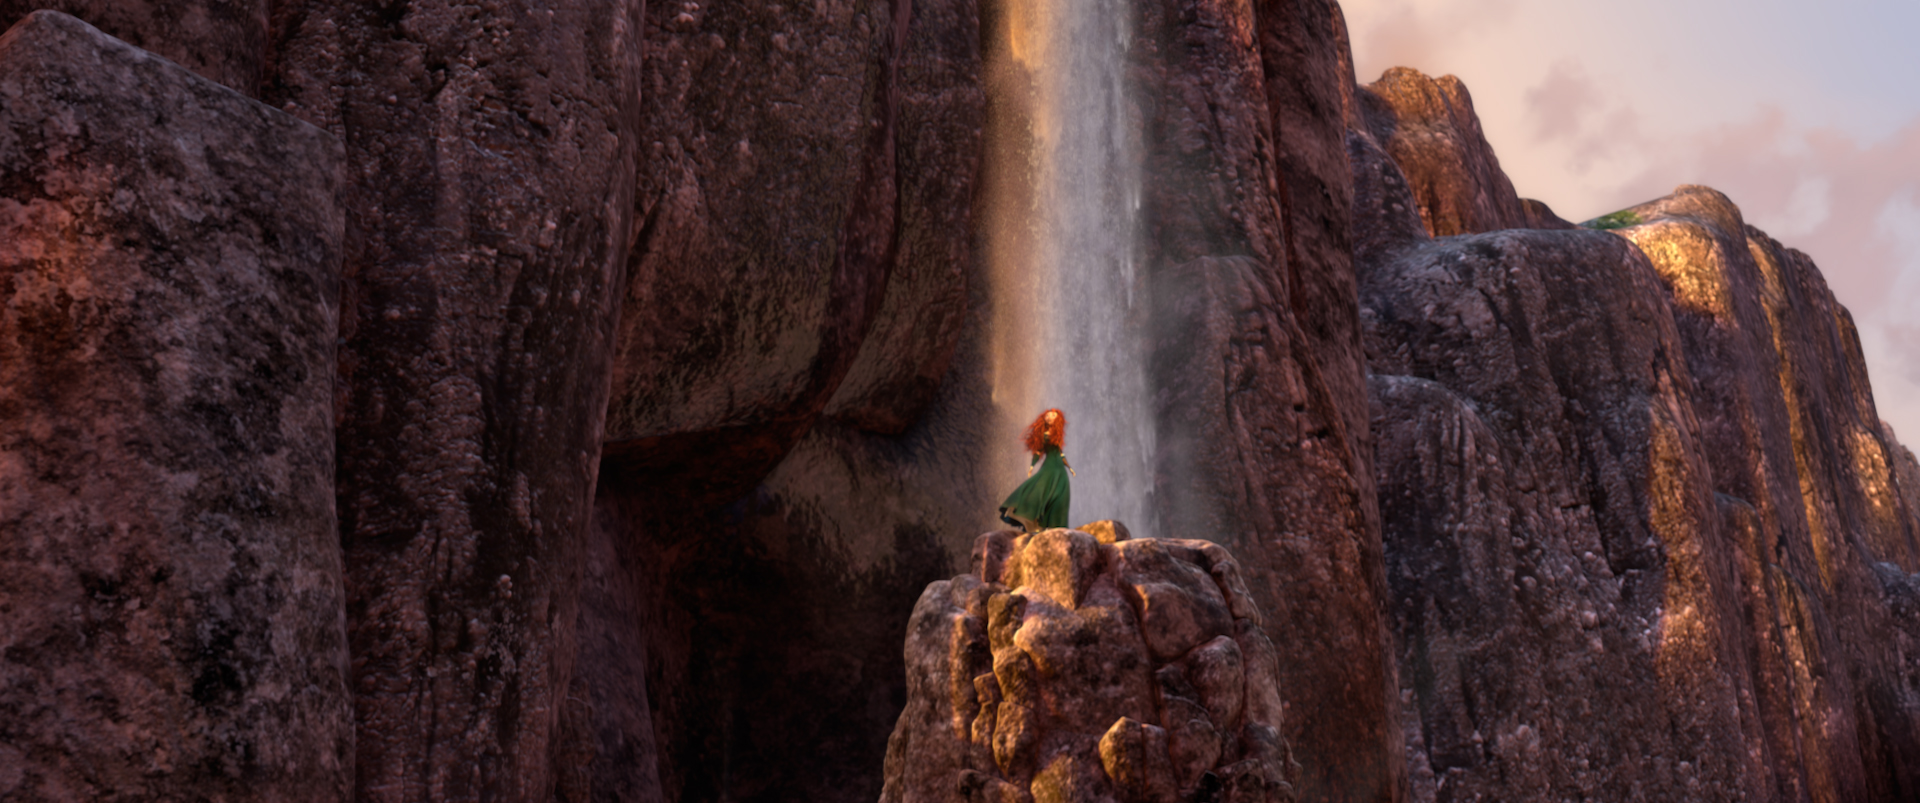 'Brave' Nominated For 10 Annie Awards